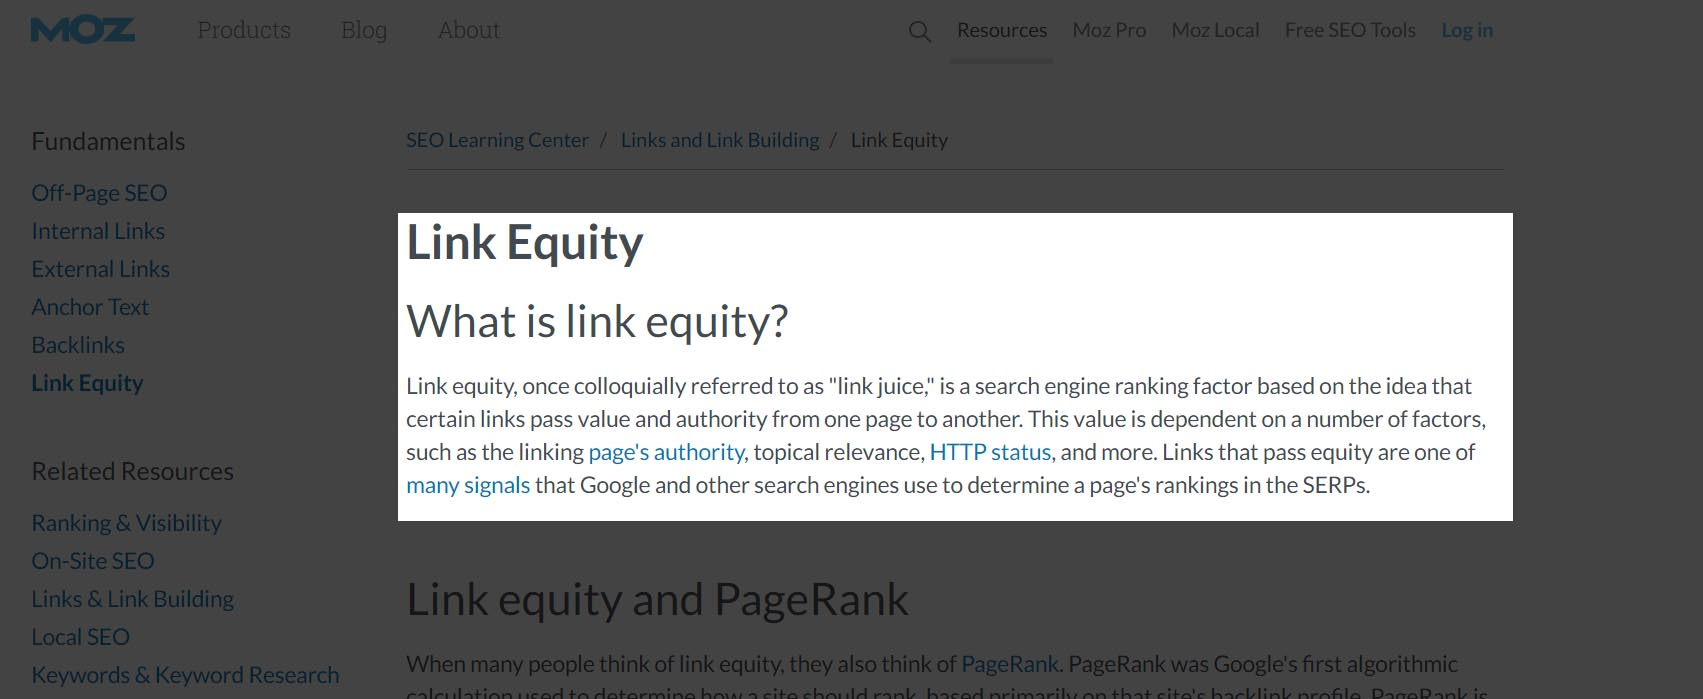 link equity explanation from Moz